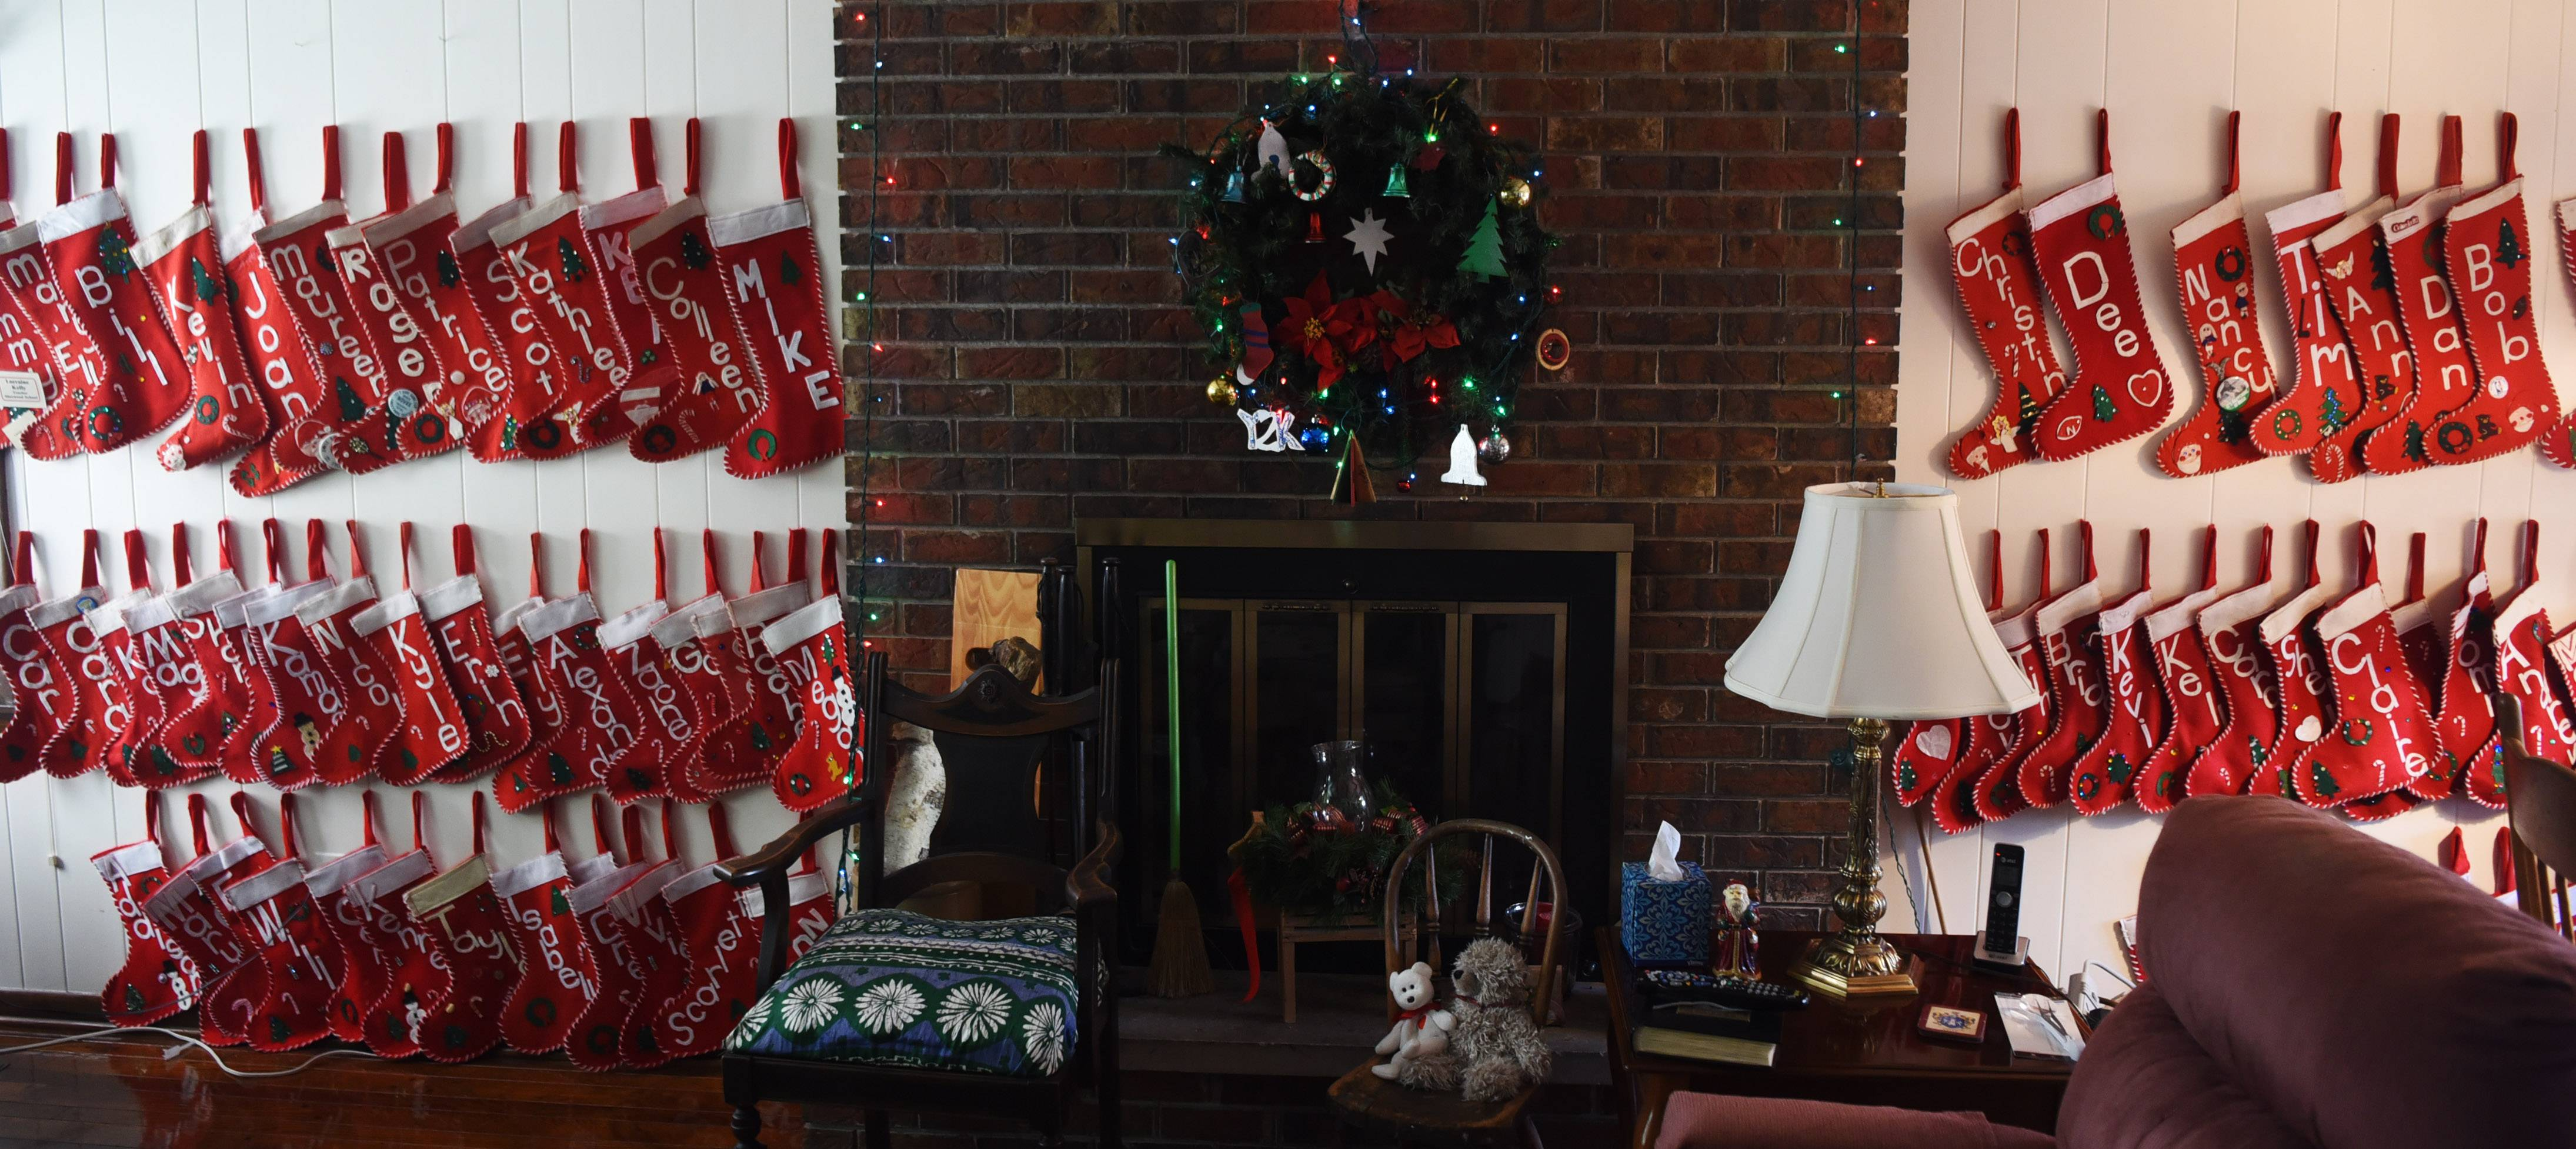 Lorraine Kelly of Arlington Heights has 73 stockings hanging in her house representing each member of her extended family. The colorful stockings fill the wall and are the backdrop for a family celebration that takes place every year on Dec. 23.